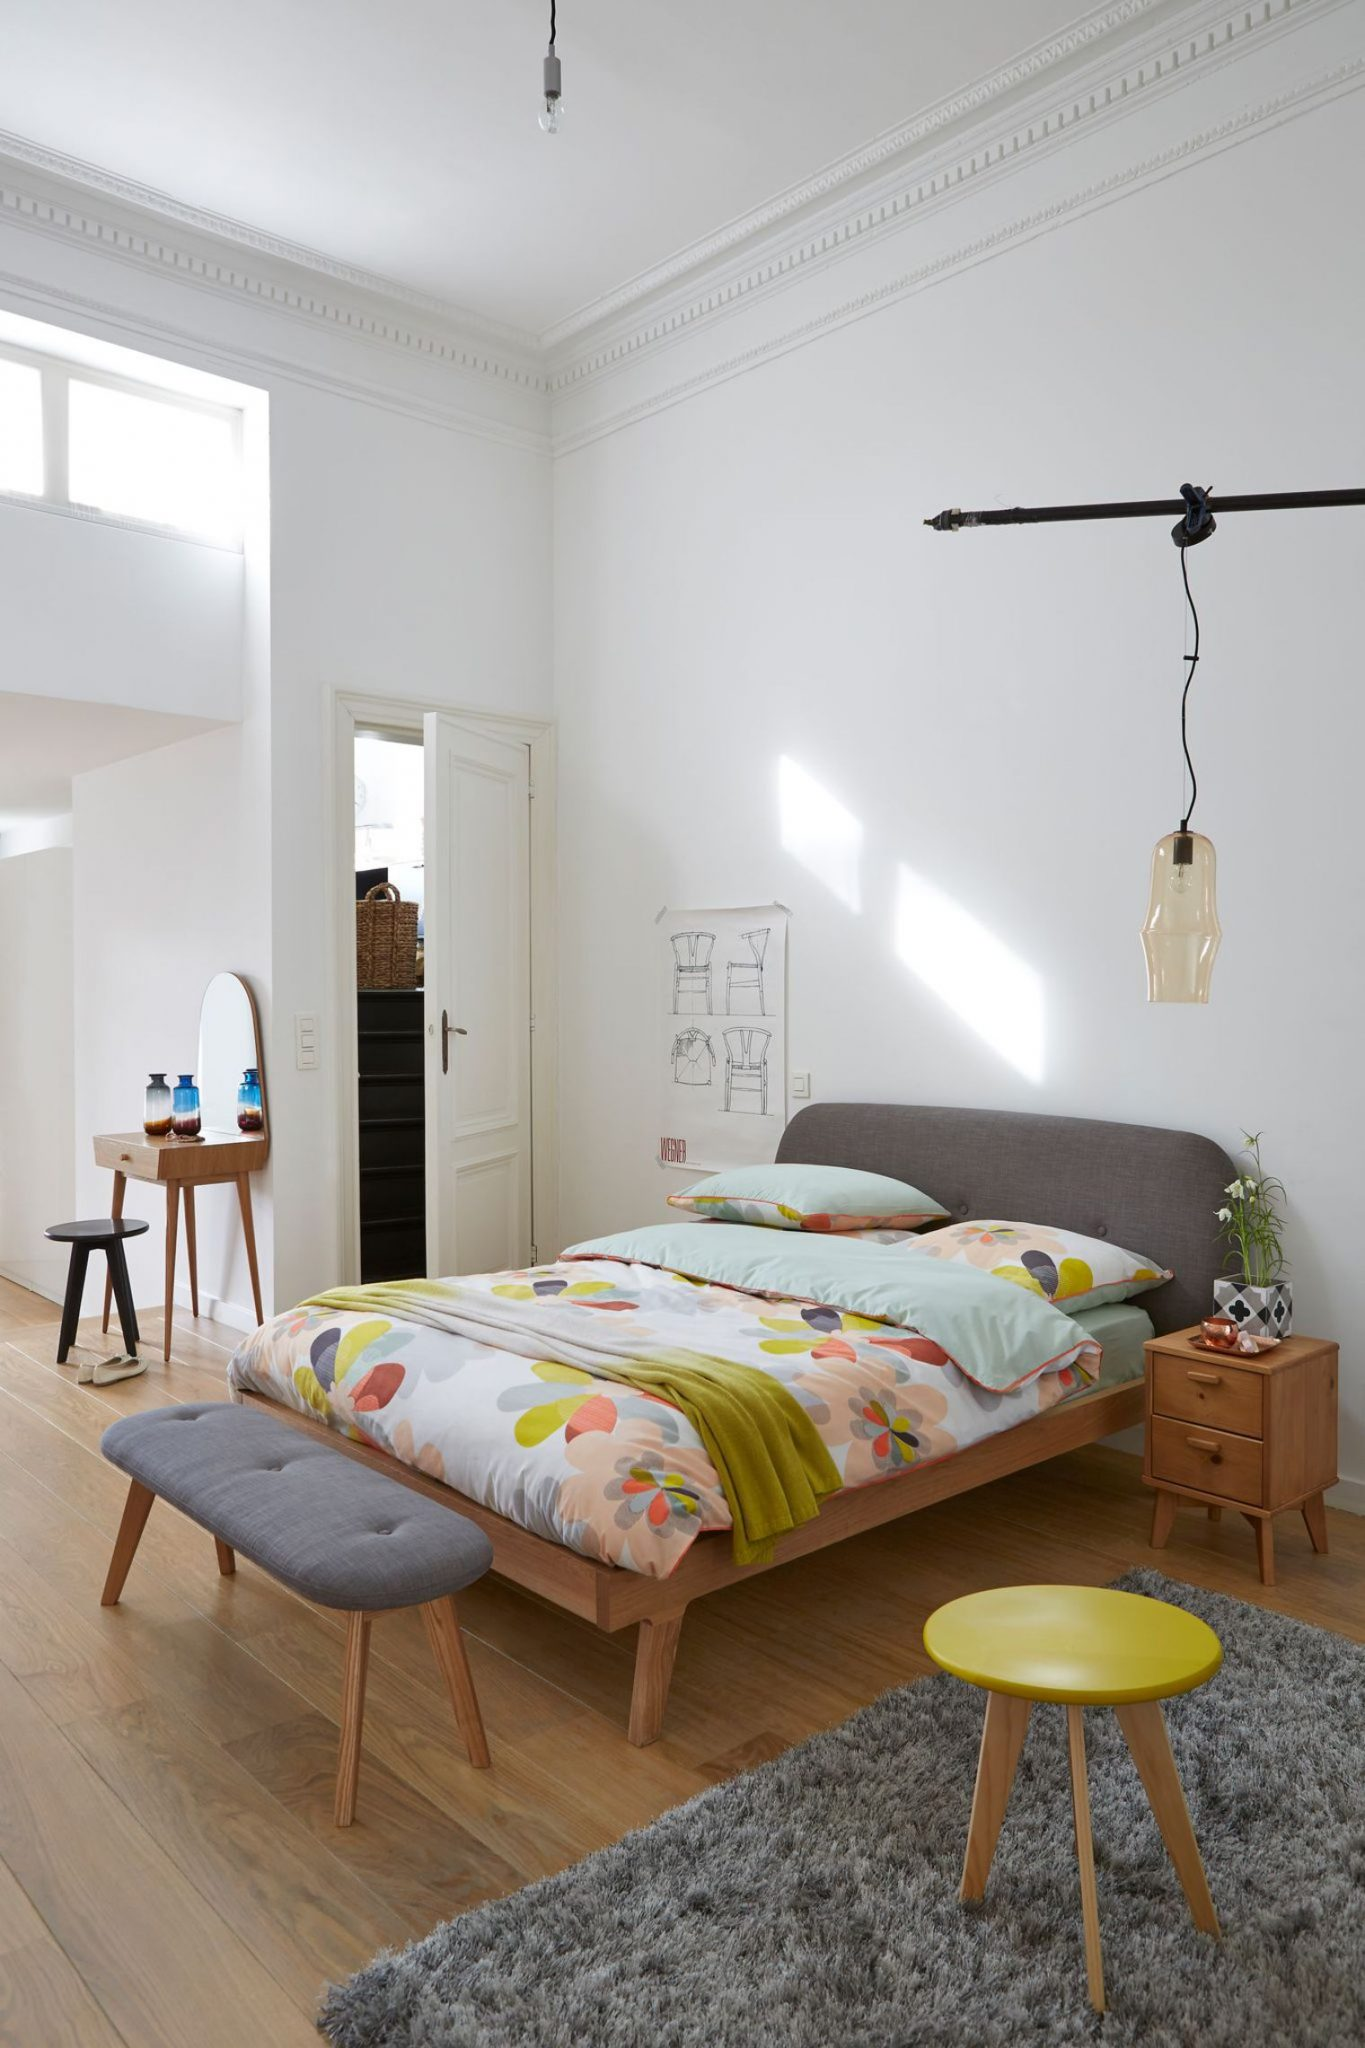 chambre coucher style scandinave le monde de l a. Black Bedroom Furniture Sets. Home Design Ideas